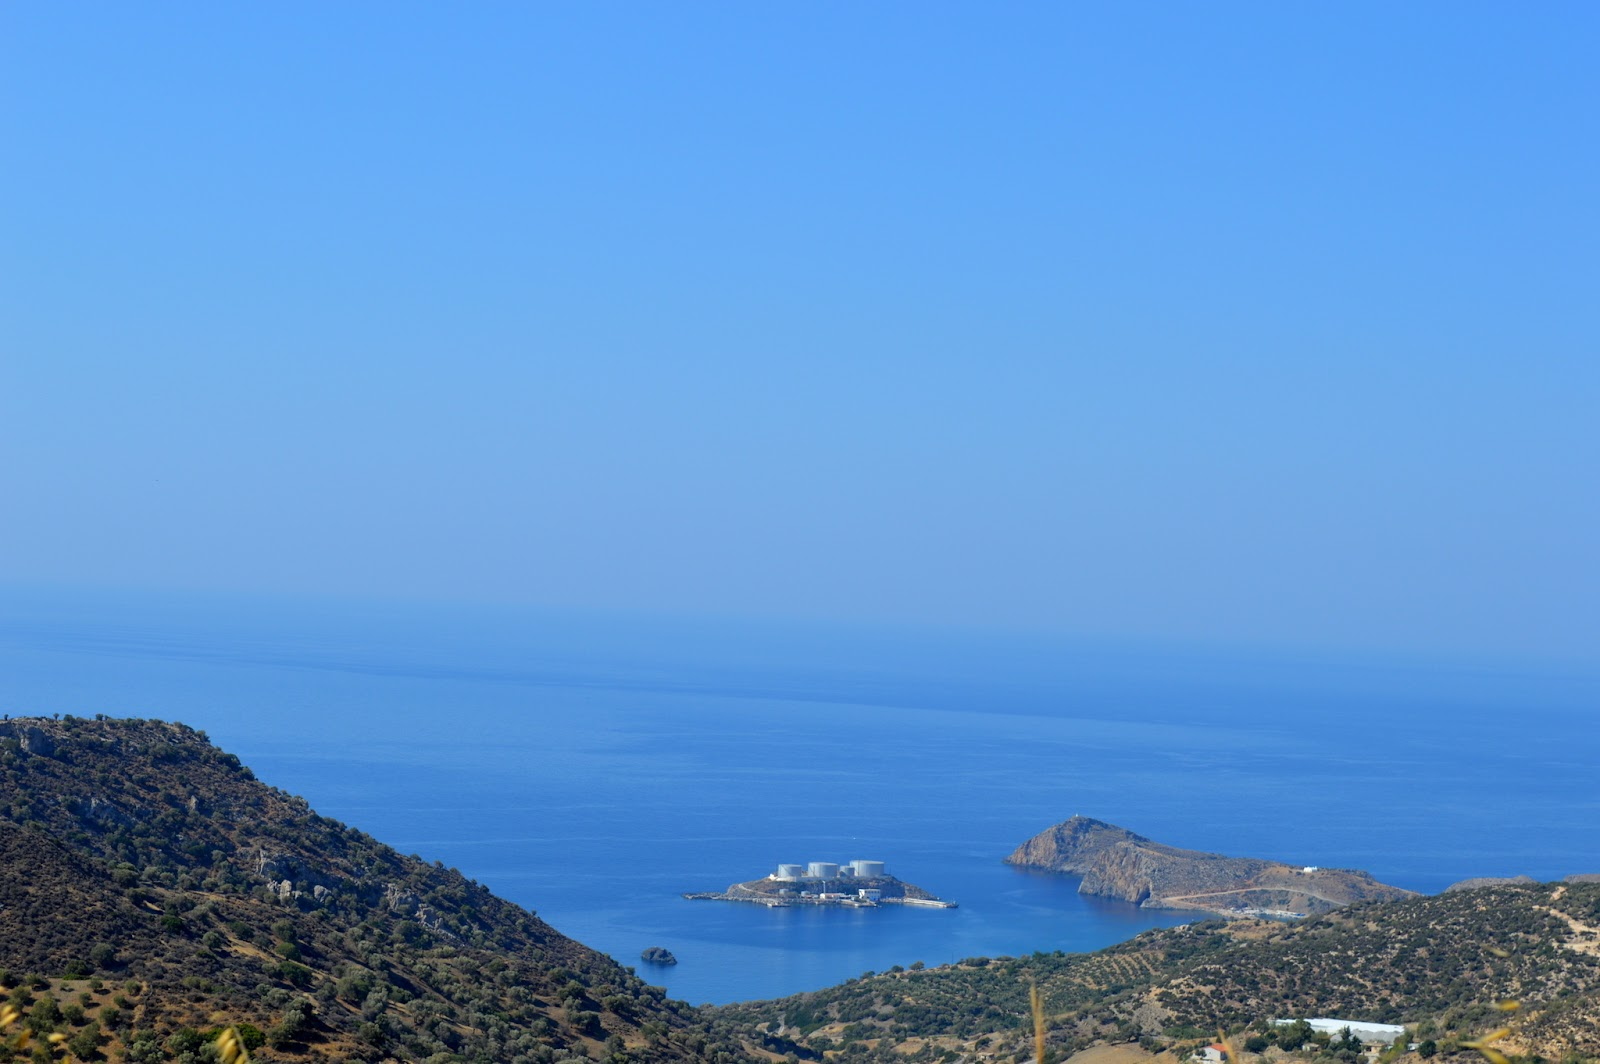 View of the beach of kaloi limenes south of Crete. Note the oil storage.